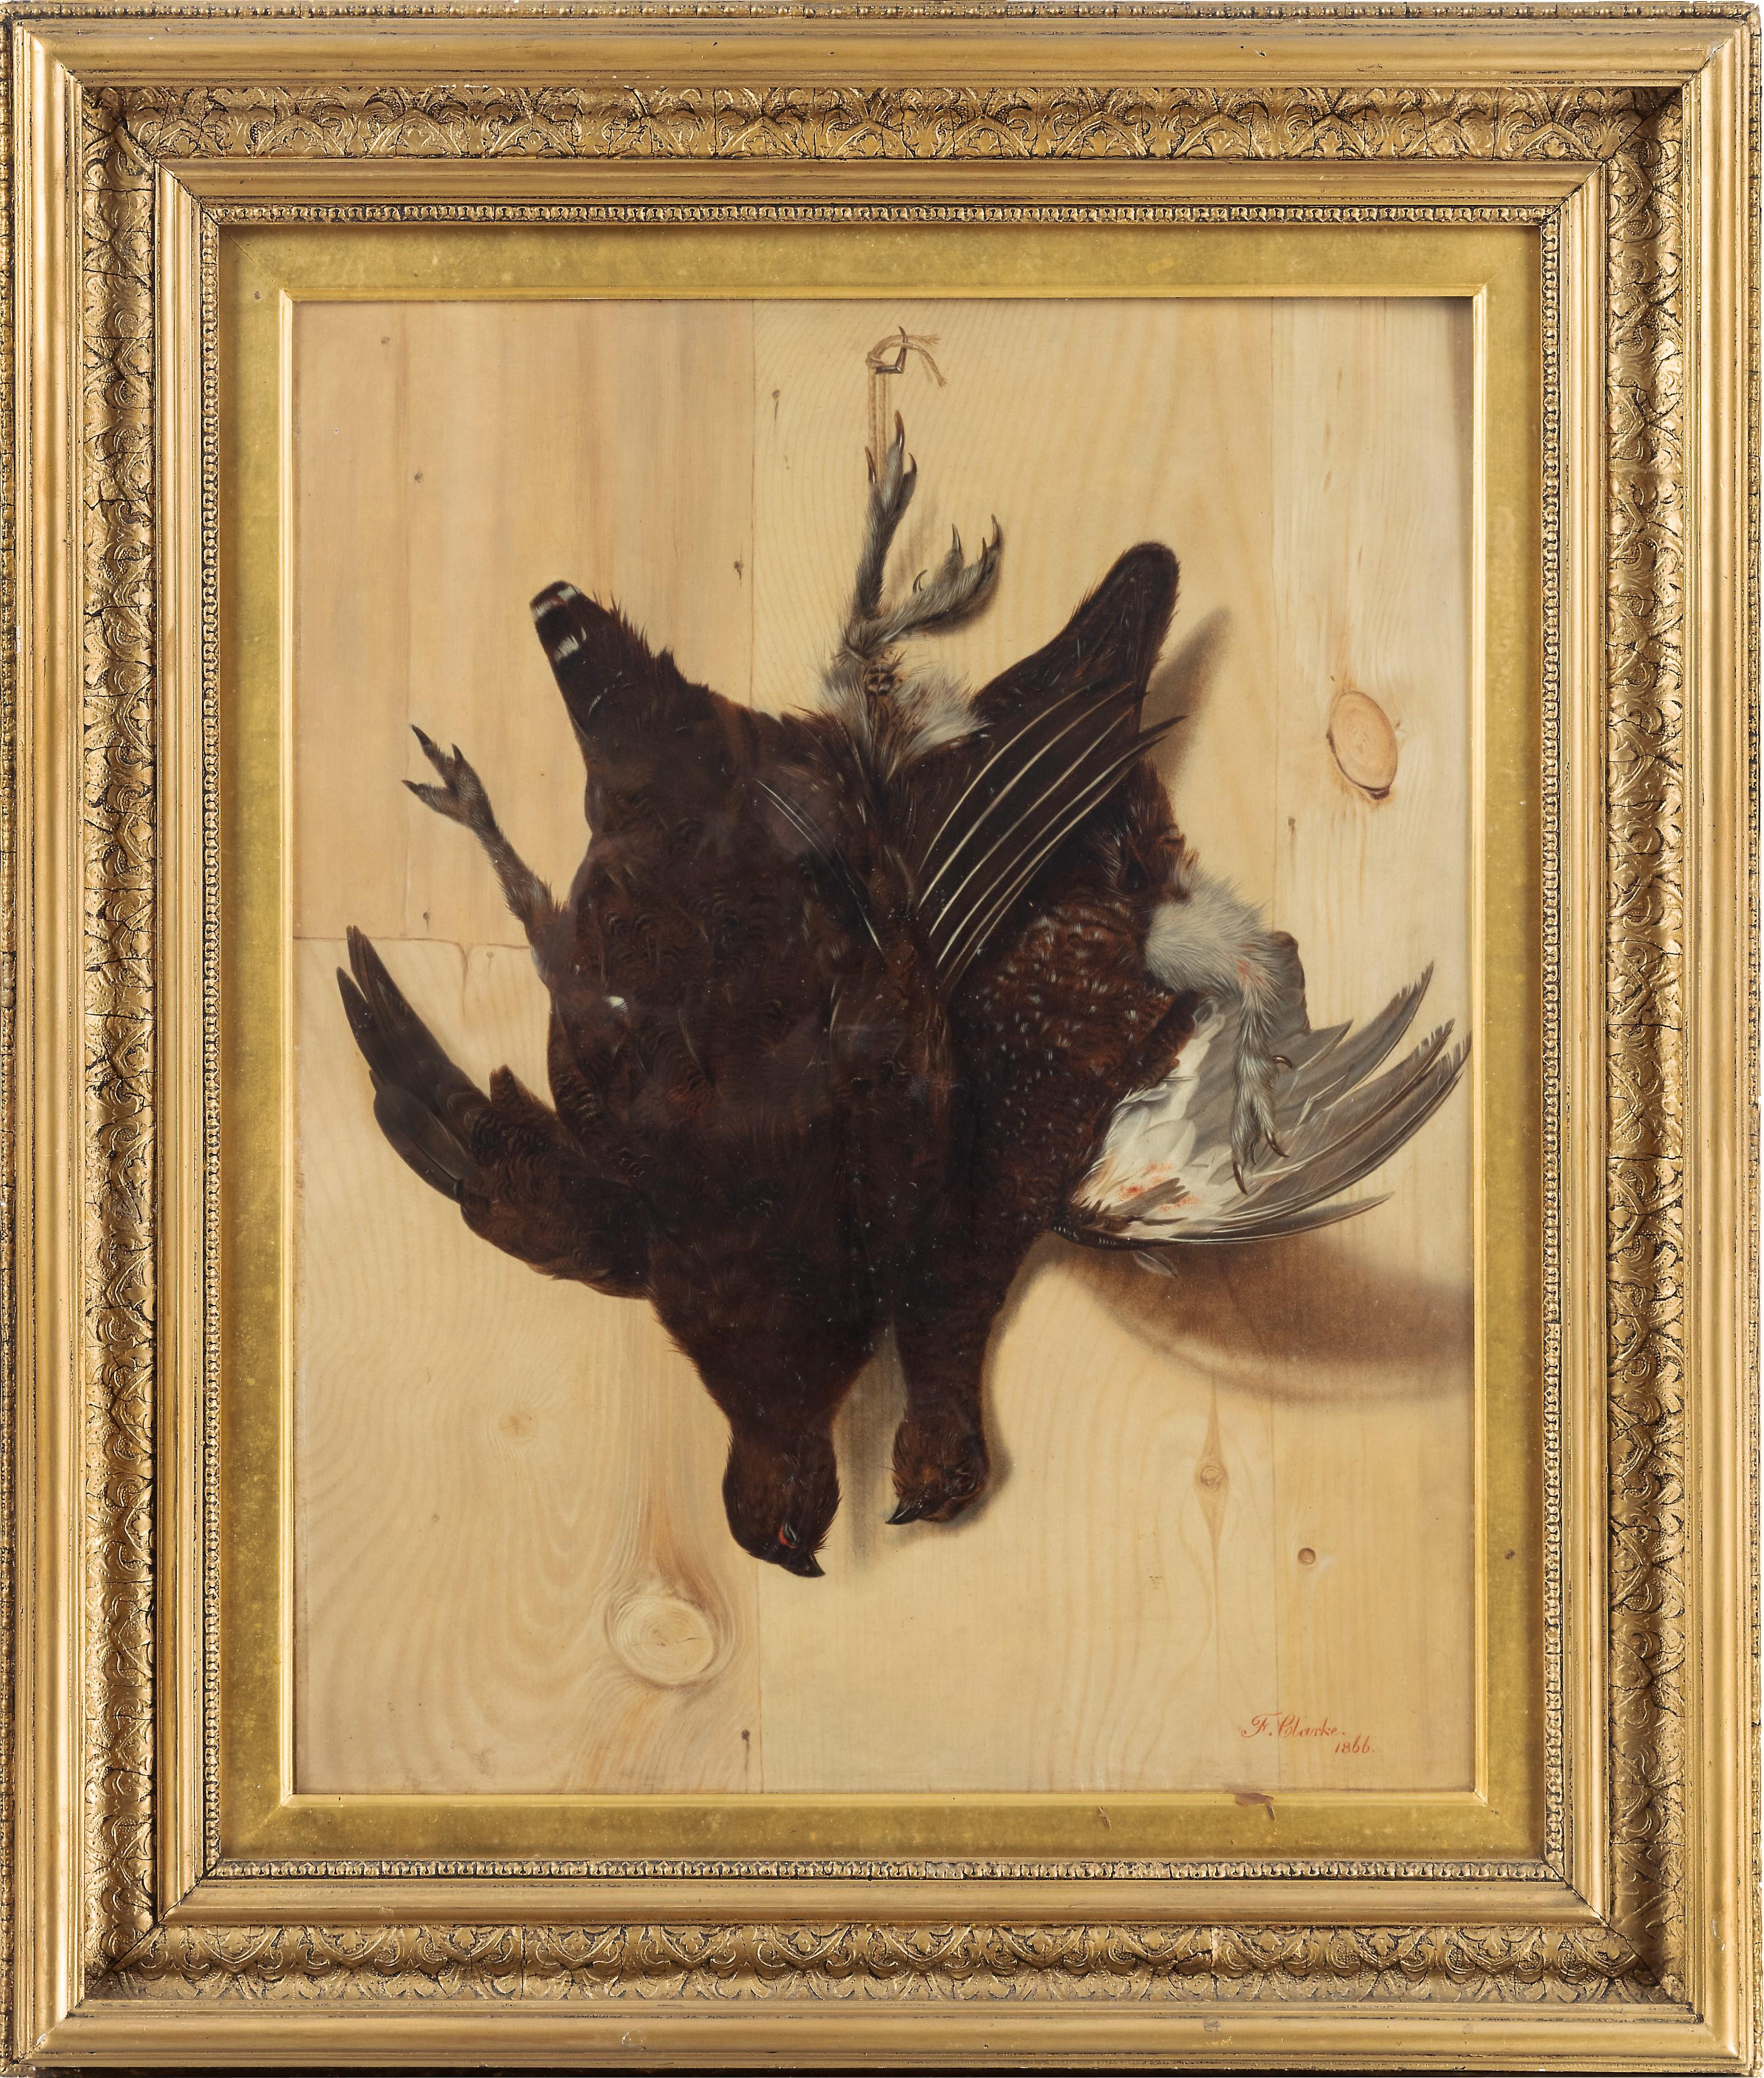 A hunting trompe l'oeil still life of a brace of grouse